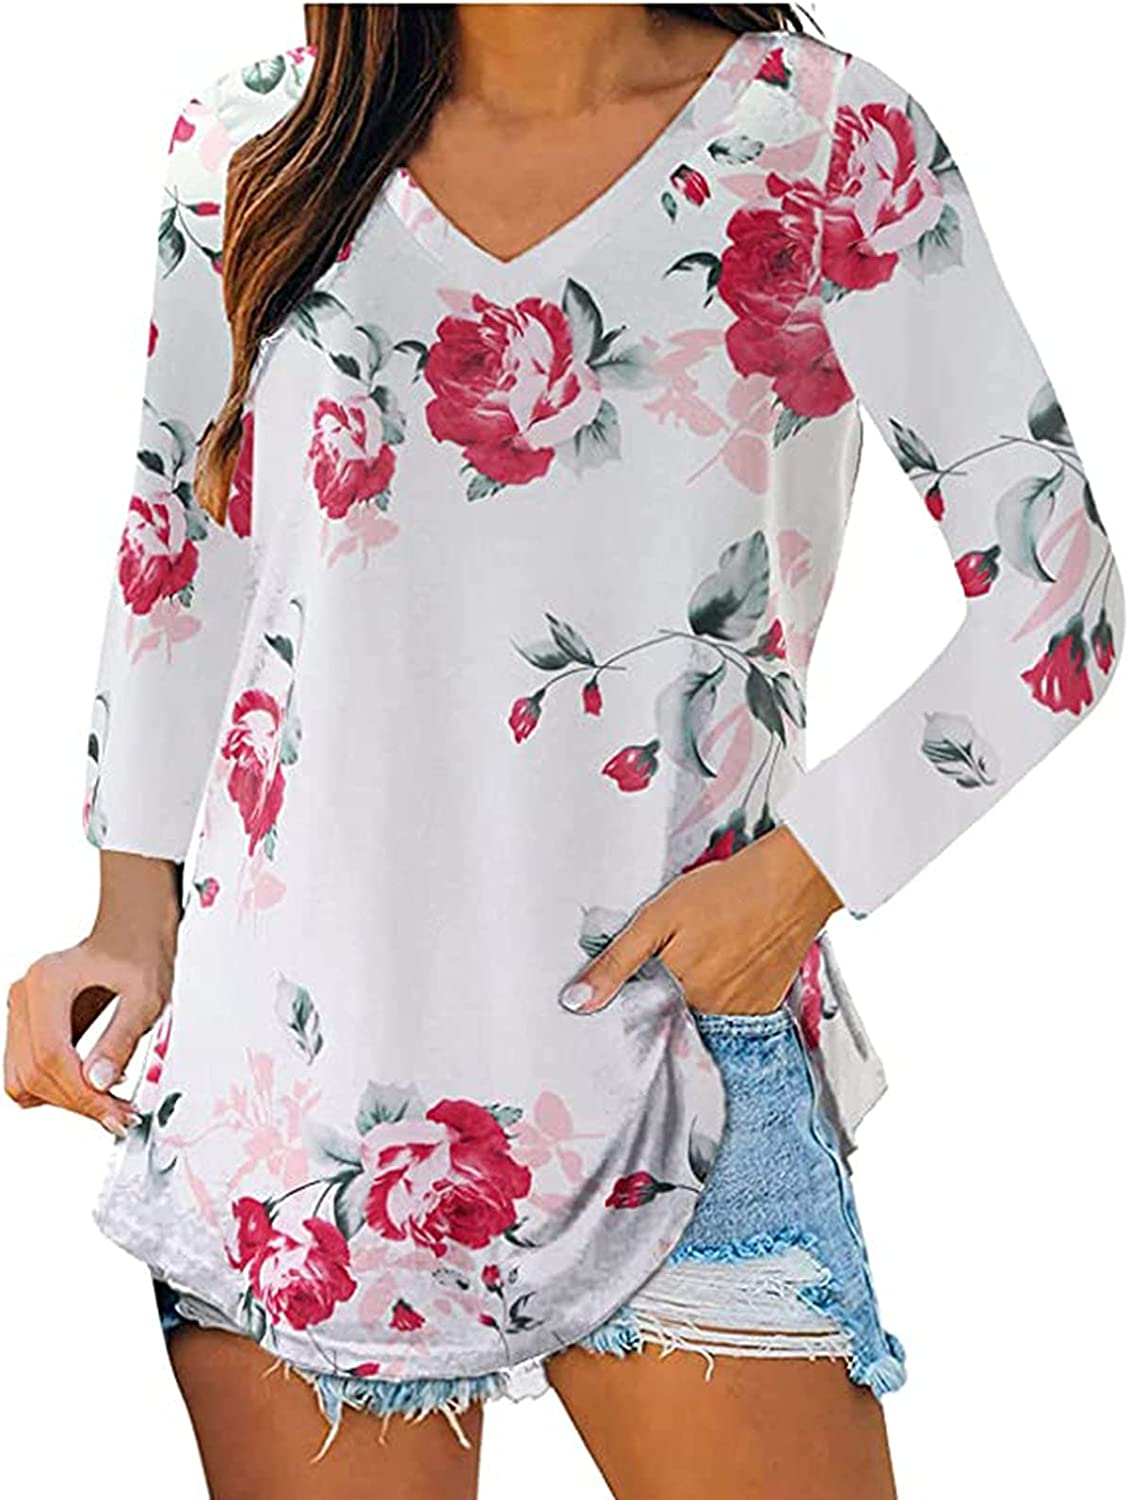 Casual Fall Tops for Women Long Sleeve Shirts Loose V Neck Blouses Fashion Floral Print Pullover Sweatshirt